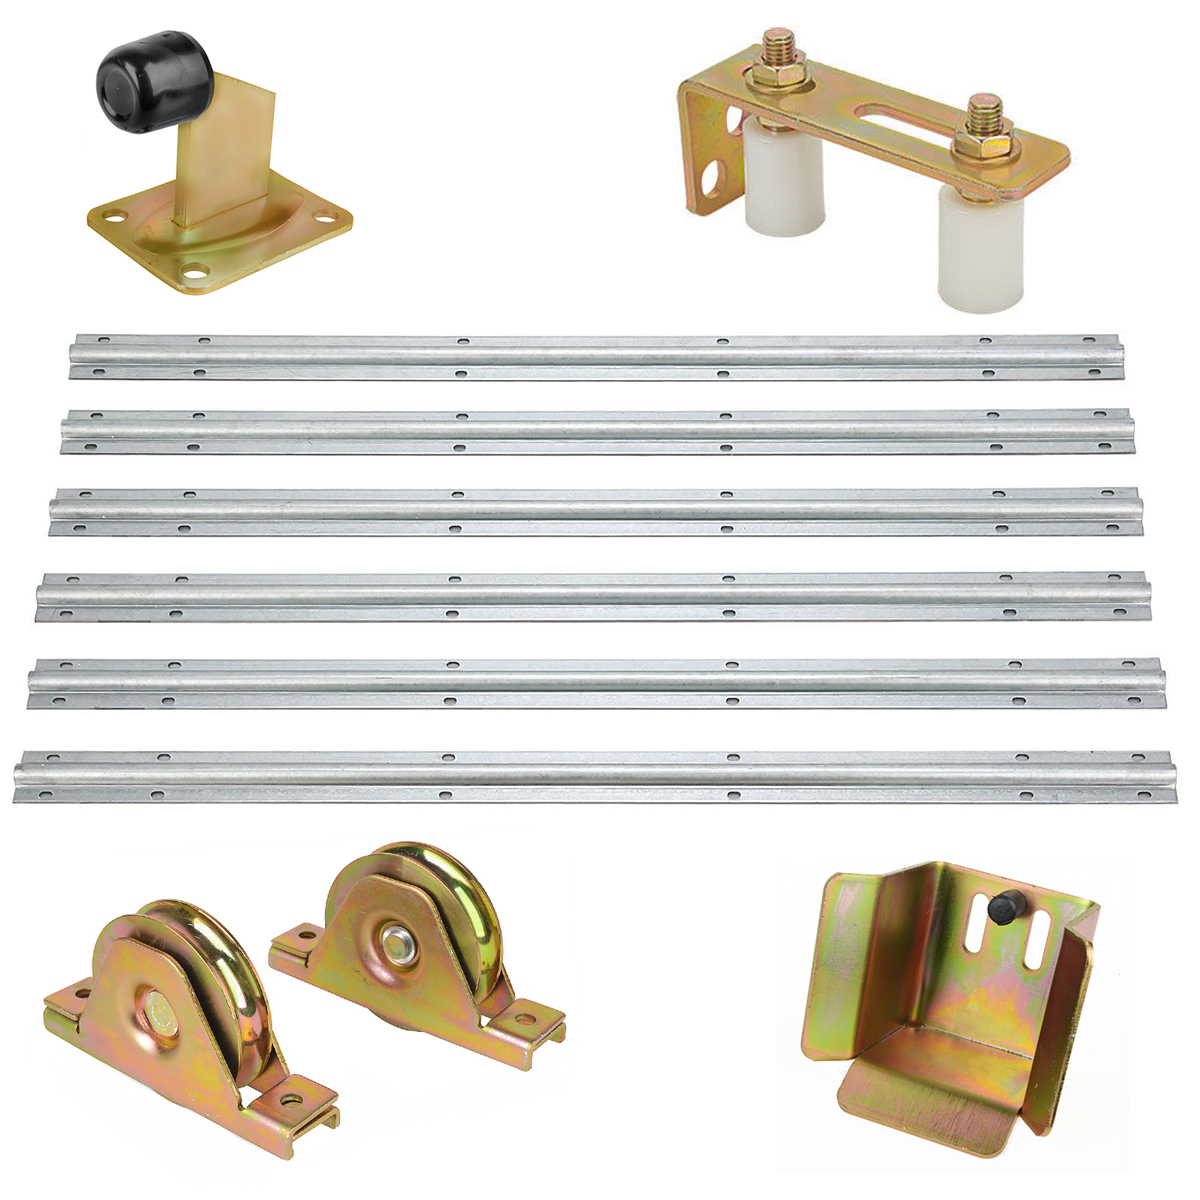 Gate Hardware Kit Gate Stopper Roller Guide Opener Track Stopper Wheels Sliding Gate Home Gate Safety Hardware Accessory MAYITR gate gate magnetic plated hardware floor wall suction gold 176203